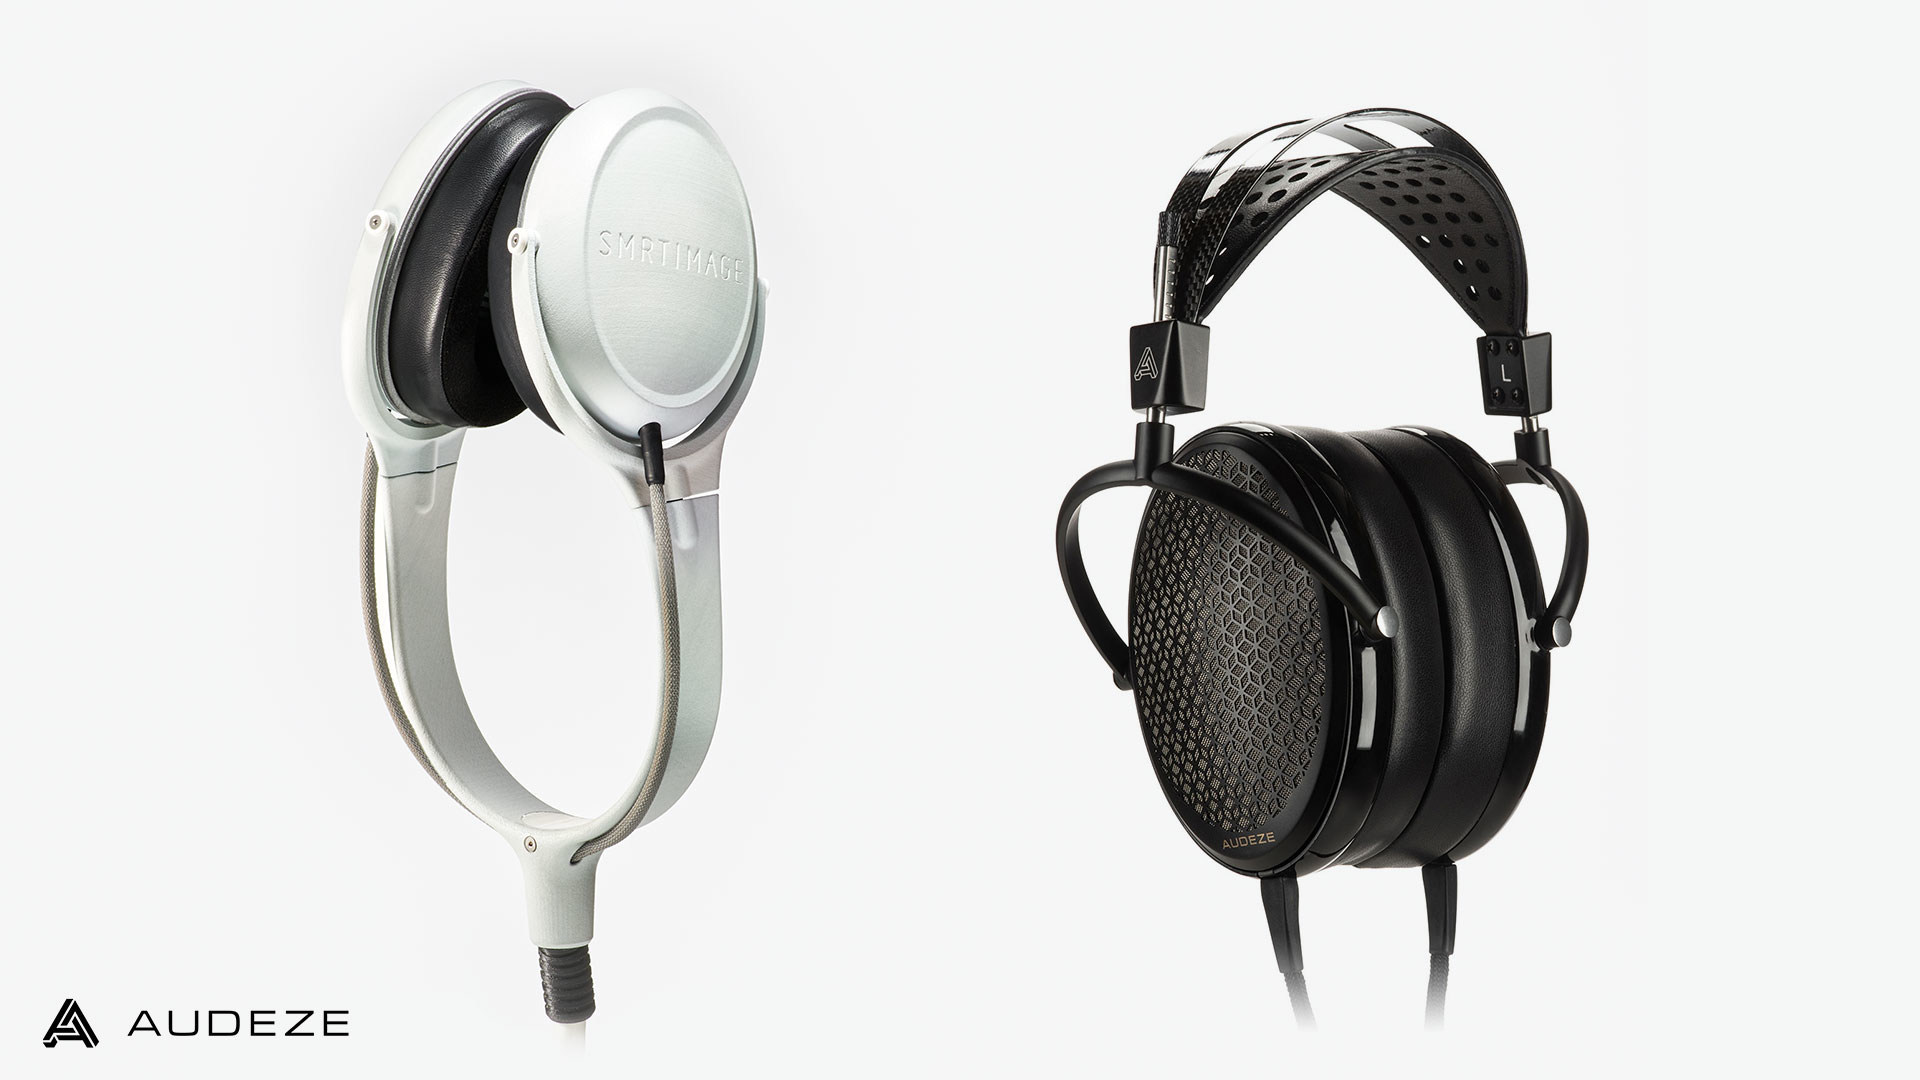 Audeze and SMRT Image announce breakthrough headphones to improve patient comfort, and to support neuroscience research